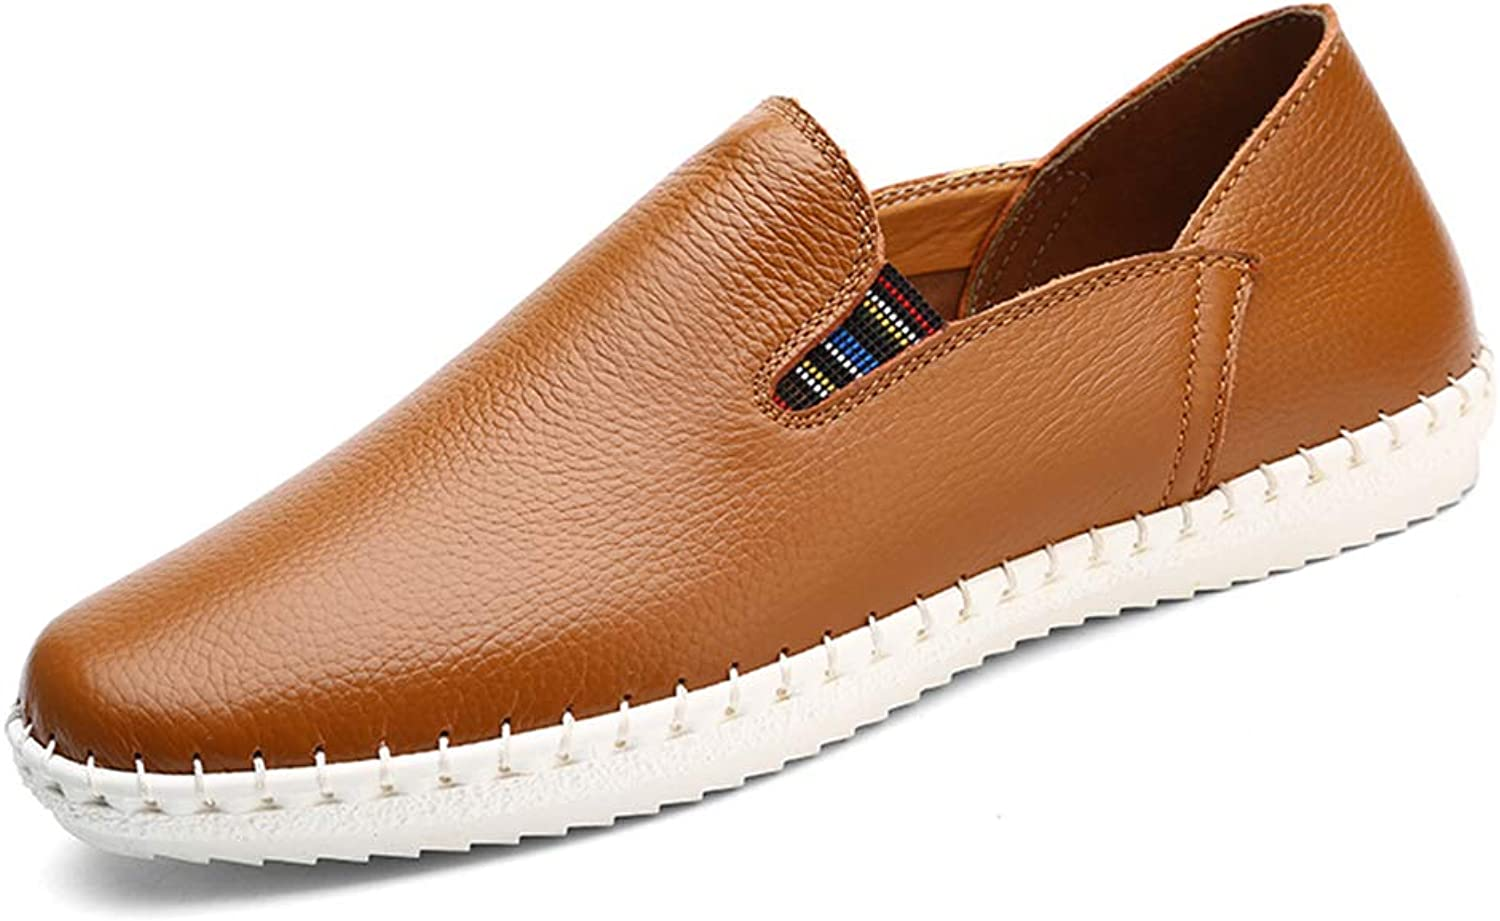 Men's shoes Casual Comfort Loafers & Slip-Ons Flat Loafers Spring Summer Comfort Lazy Driving shoes,A,40